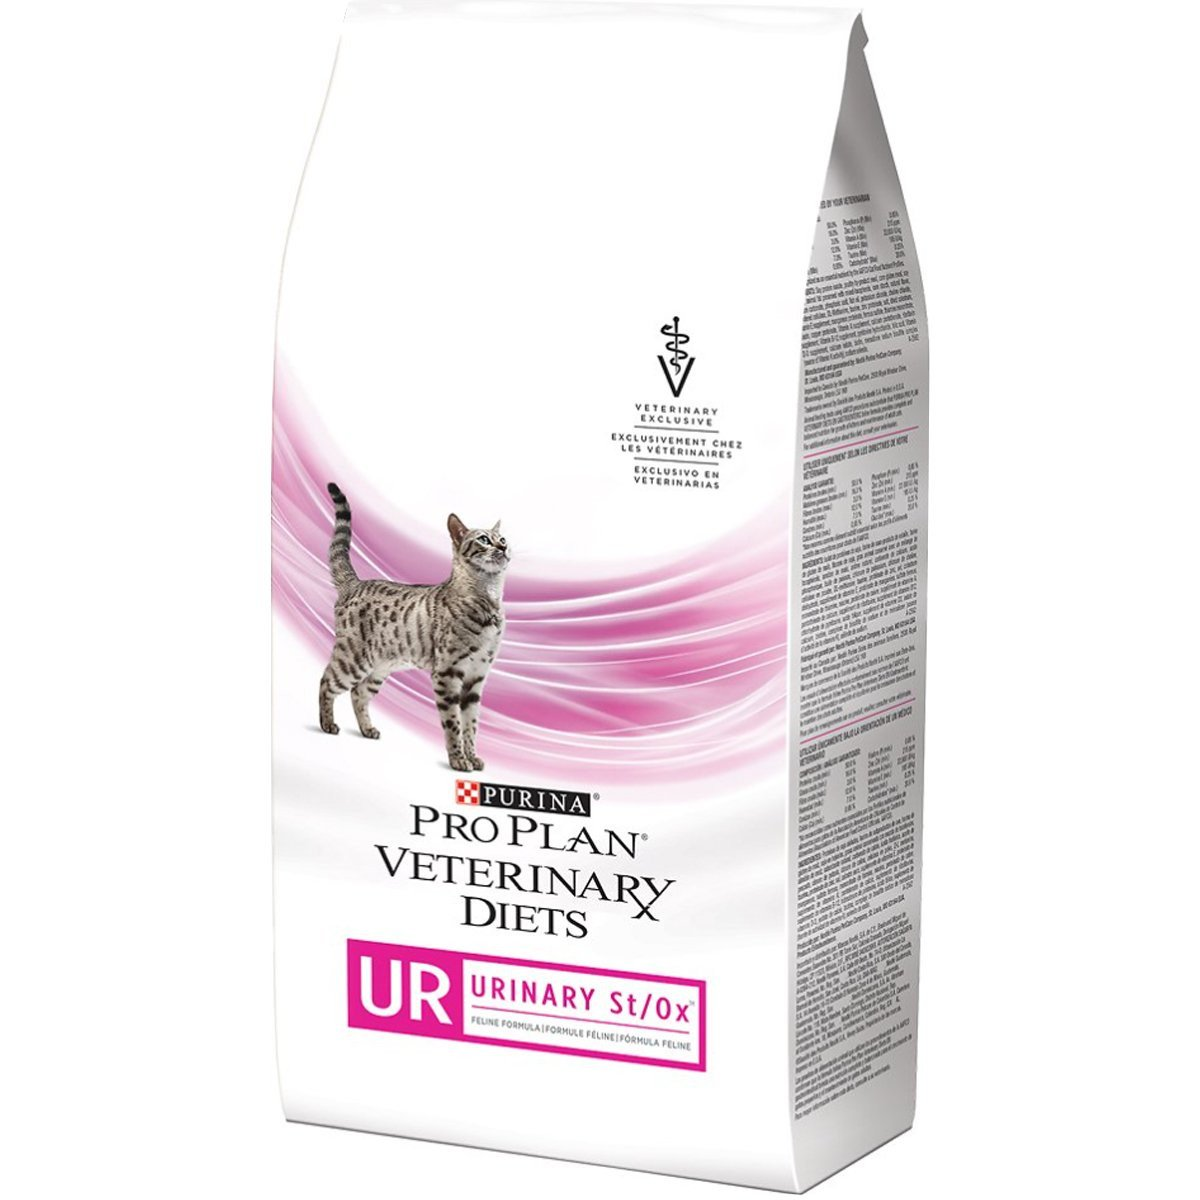 Purina UR Urinary Tract Cat Food 16 lb